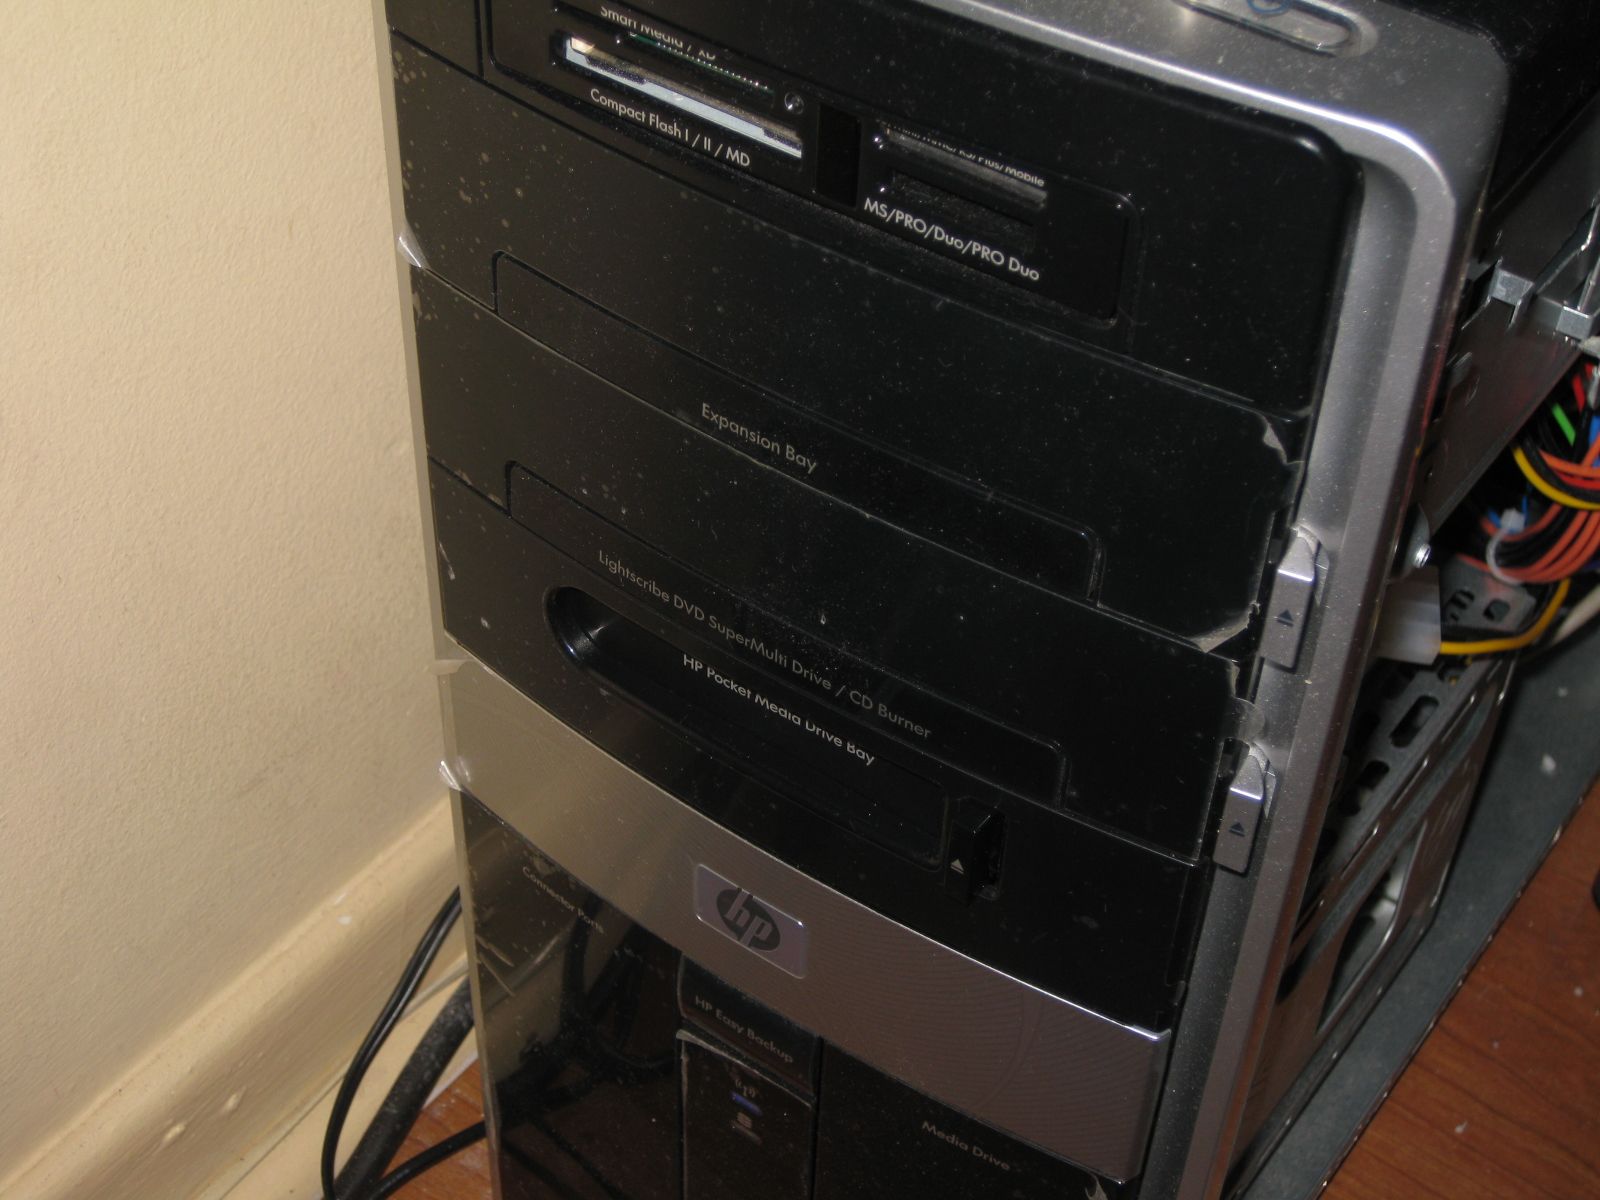 Picture of Seamless Zune Dock - HP Pocket Media Drive Bay